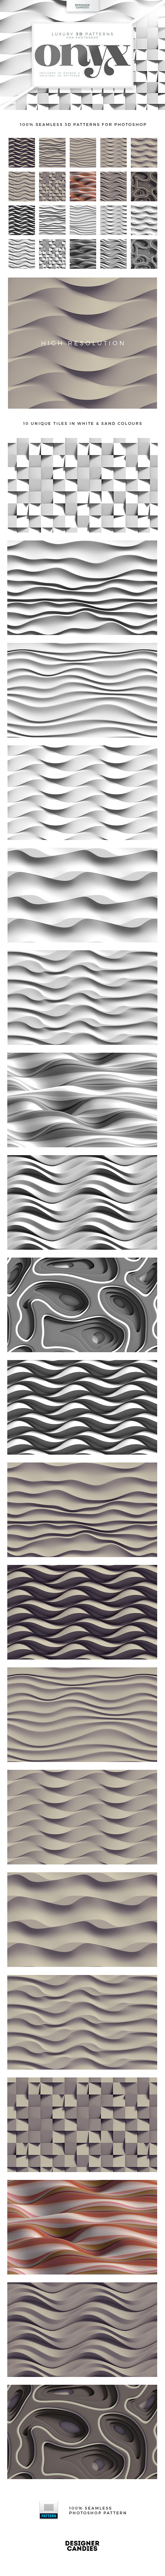 ONYX - 3D Patterns for Adobe Photoshop - Abstract Textures / Fills / Patterns